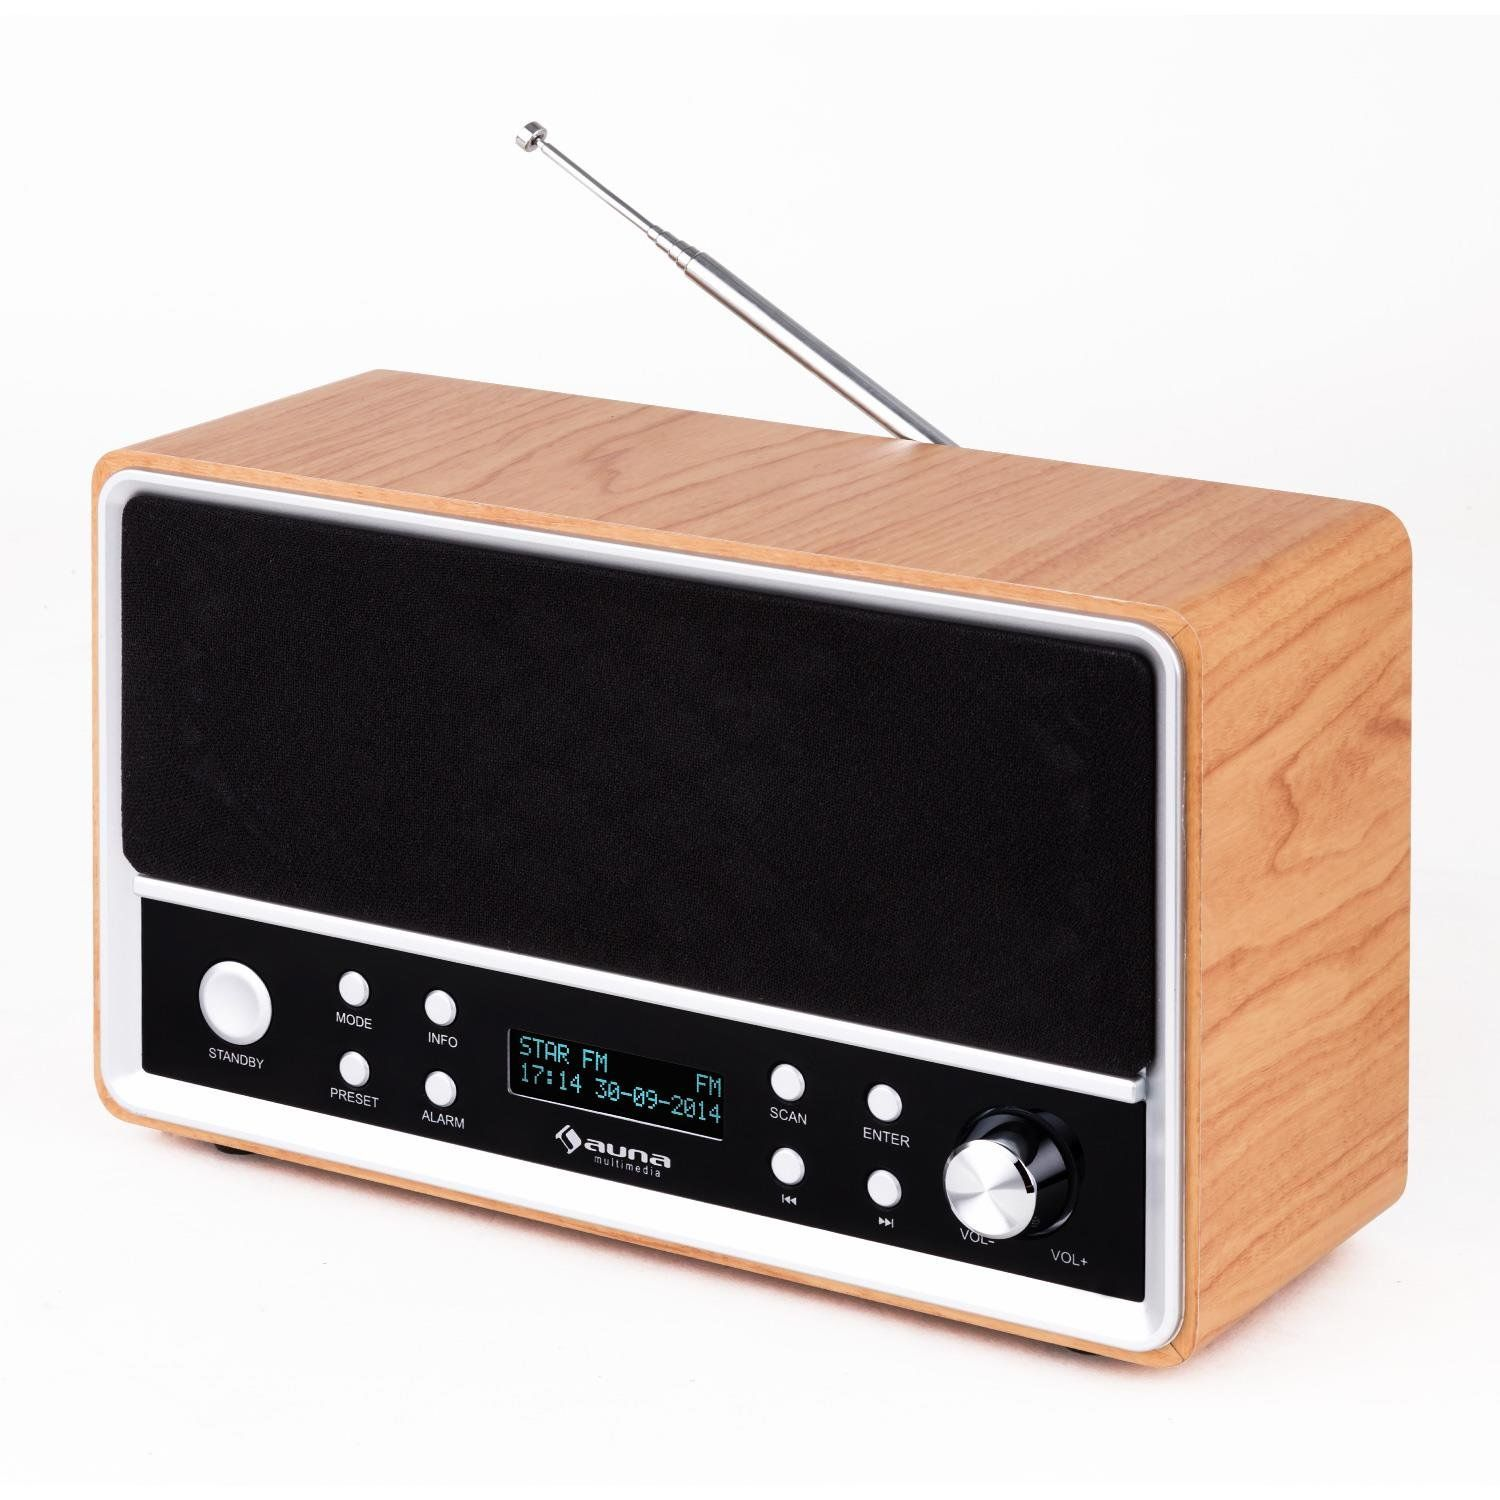 auna charleston retro radiowecker dab radio im. Black Bedroom Furniture Sets. Home Design Ideas